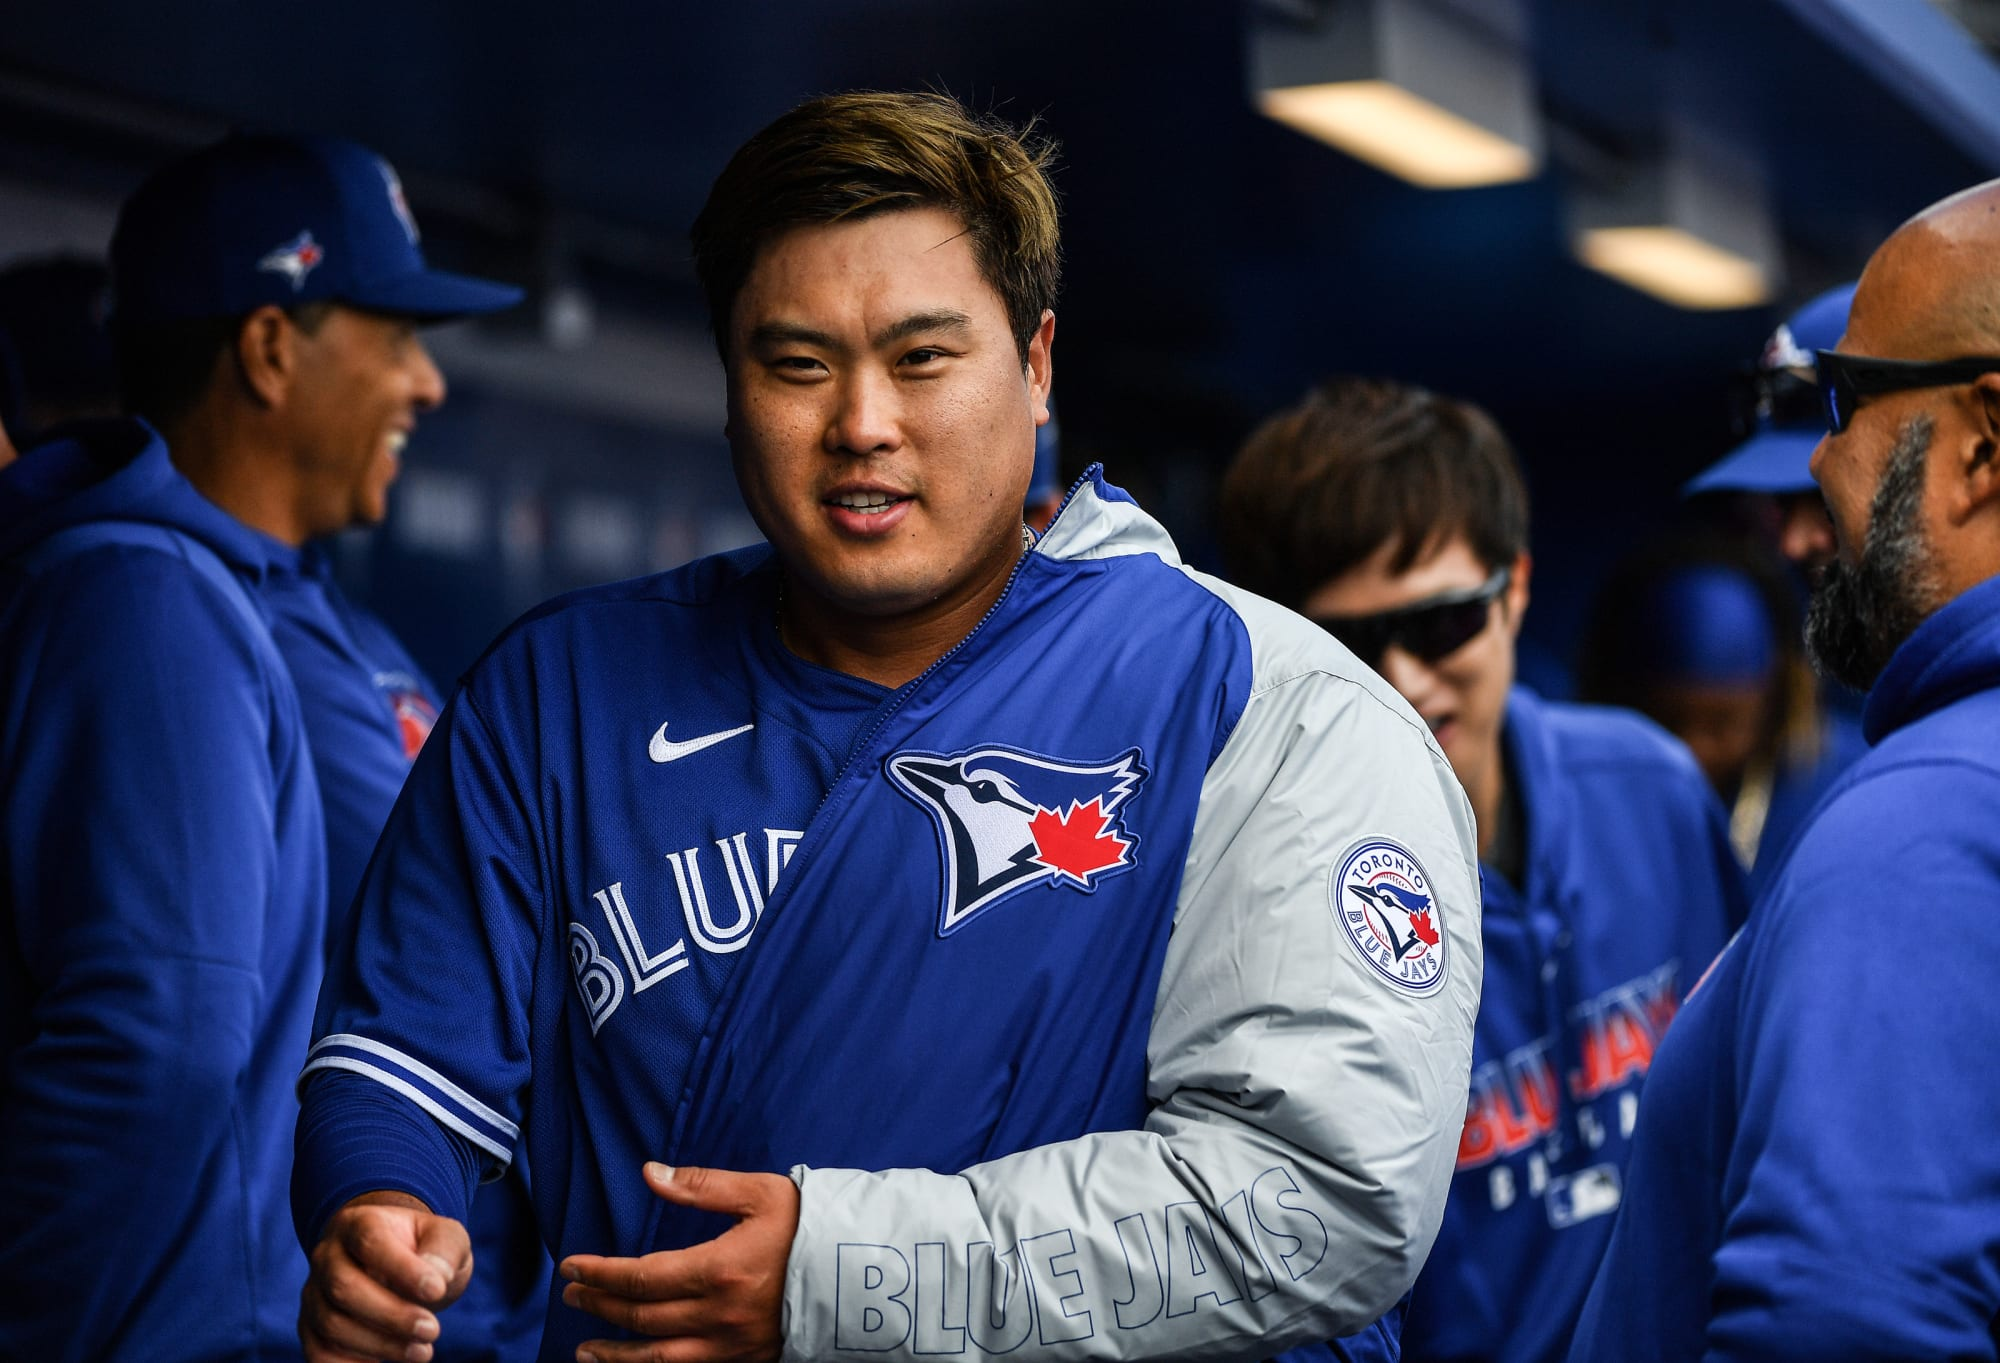 Blue Jays: Hyun-Jin Ryu's quiet acts of kindness and generosity  image